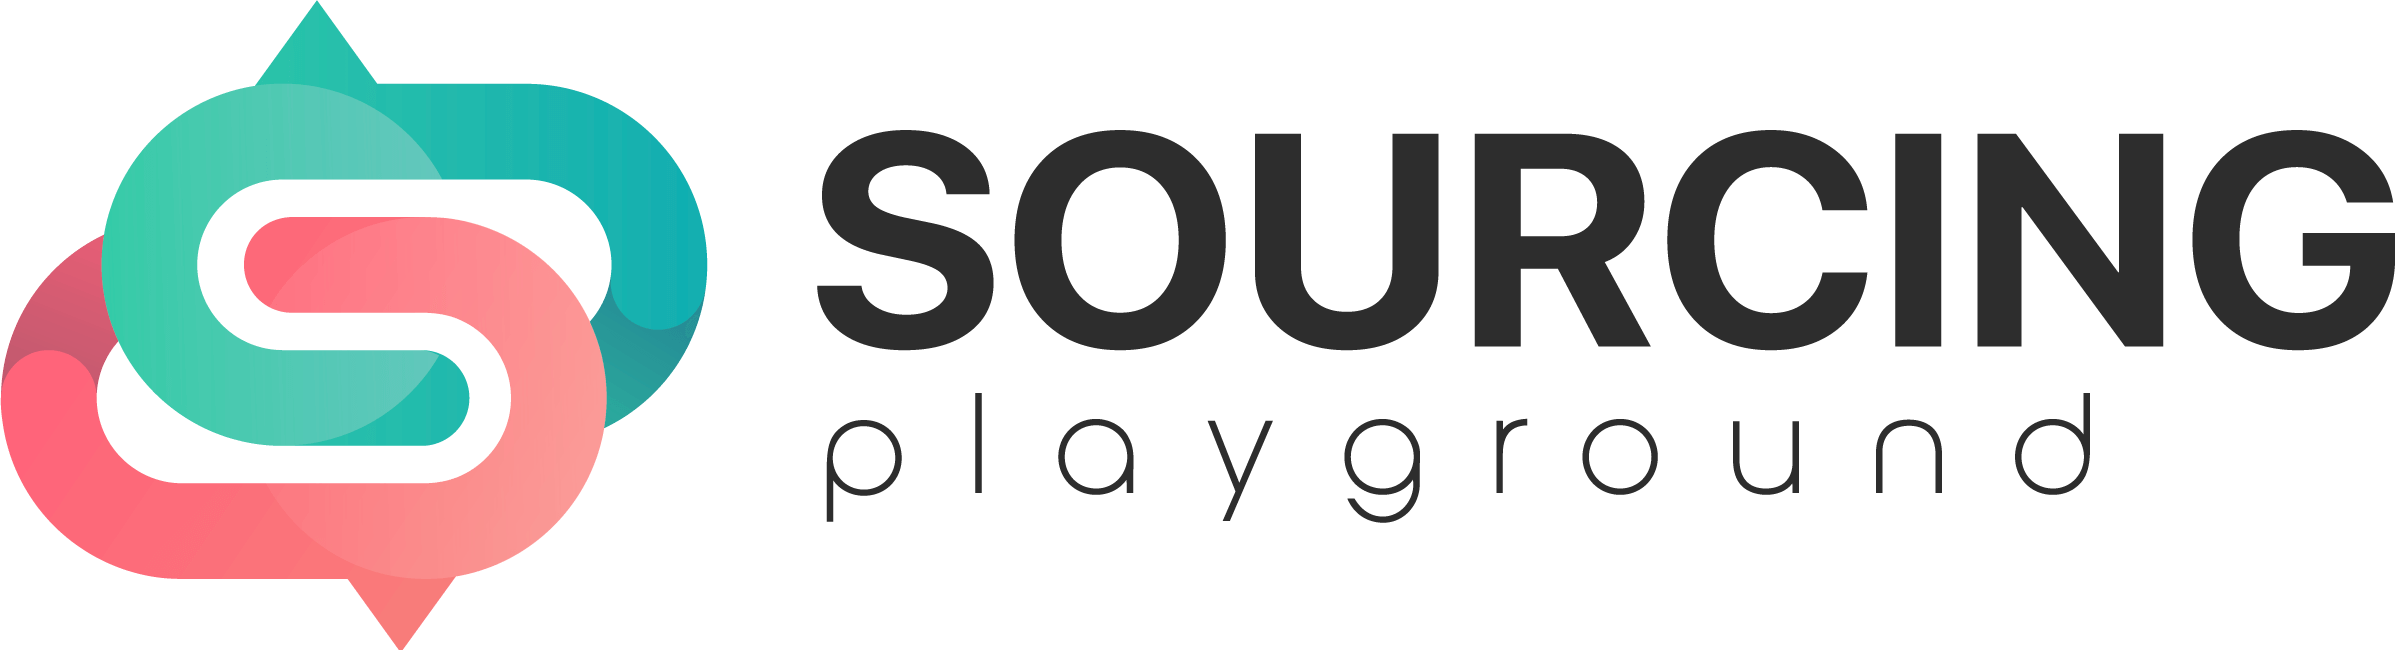 Sourcing Playground - Source for Finding Sustainable Clothing Manufacturers